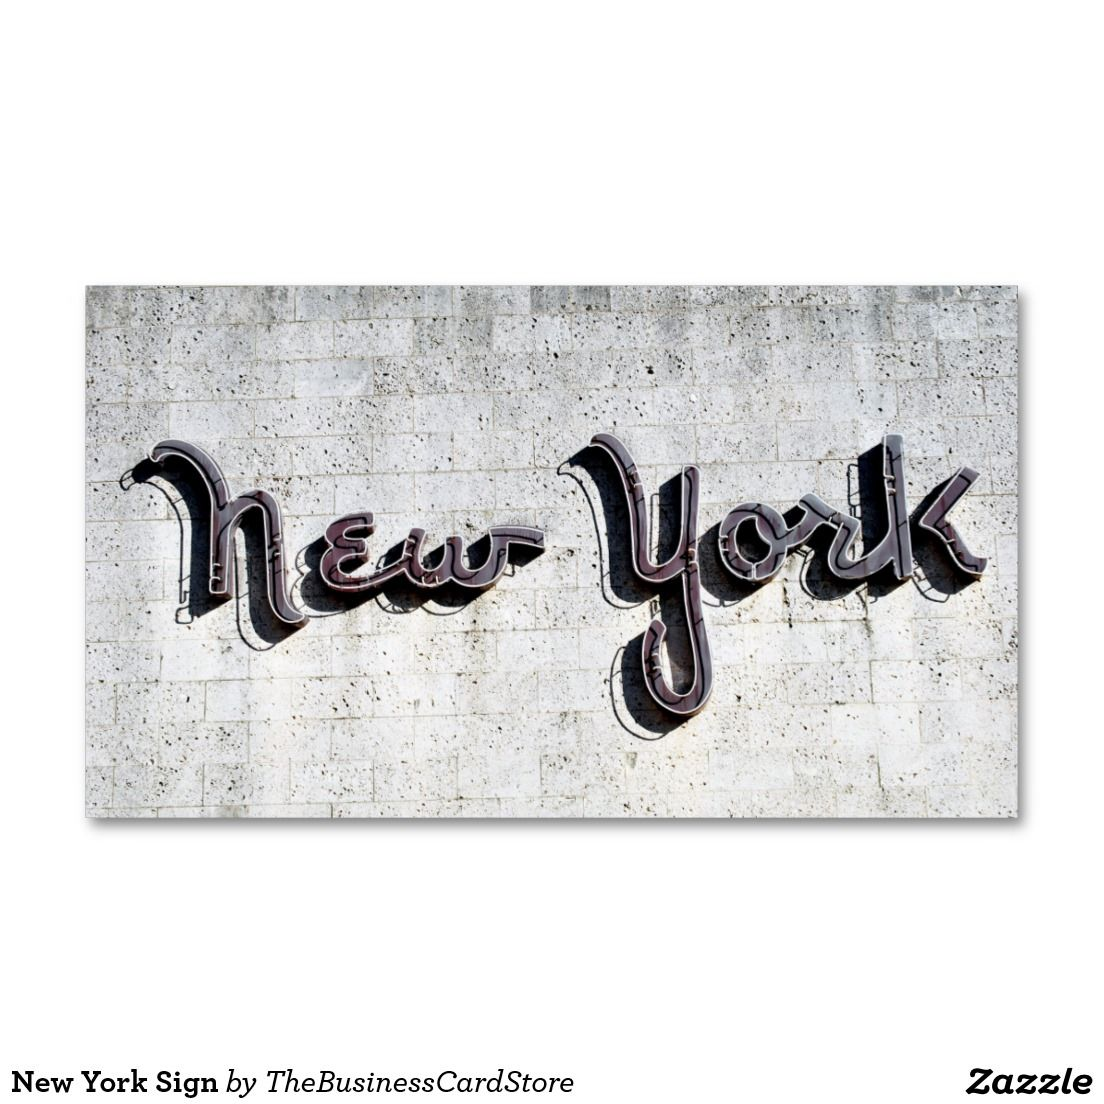 New york sign standard business card american business cards from new york sign standard business card reheart Choice Image